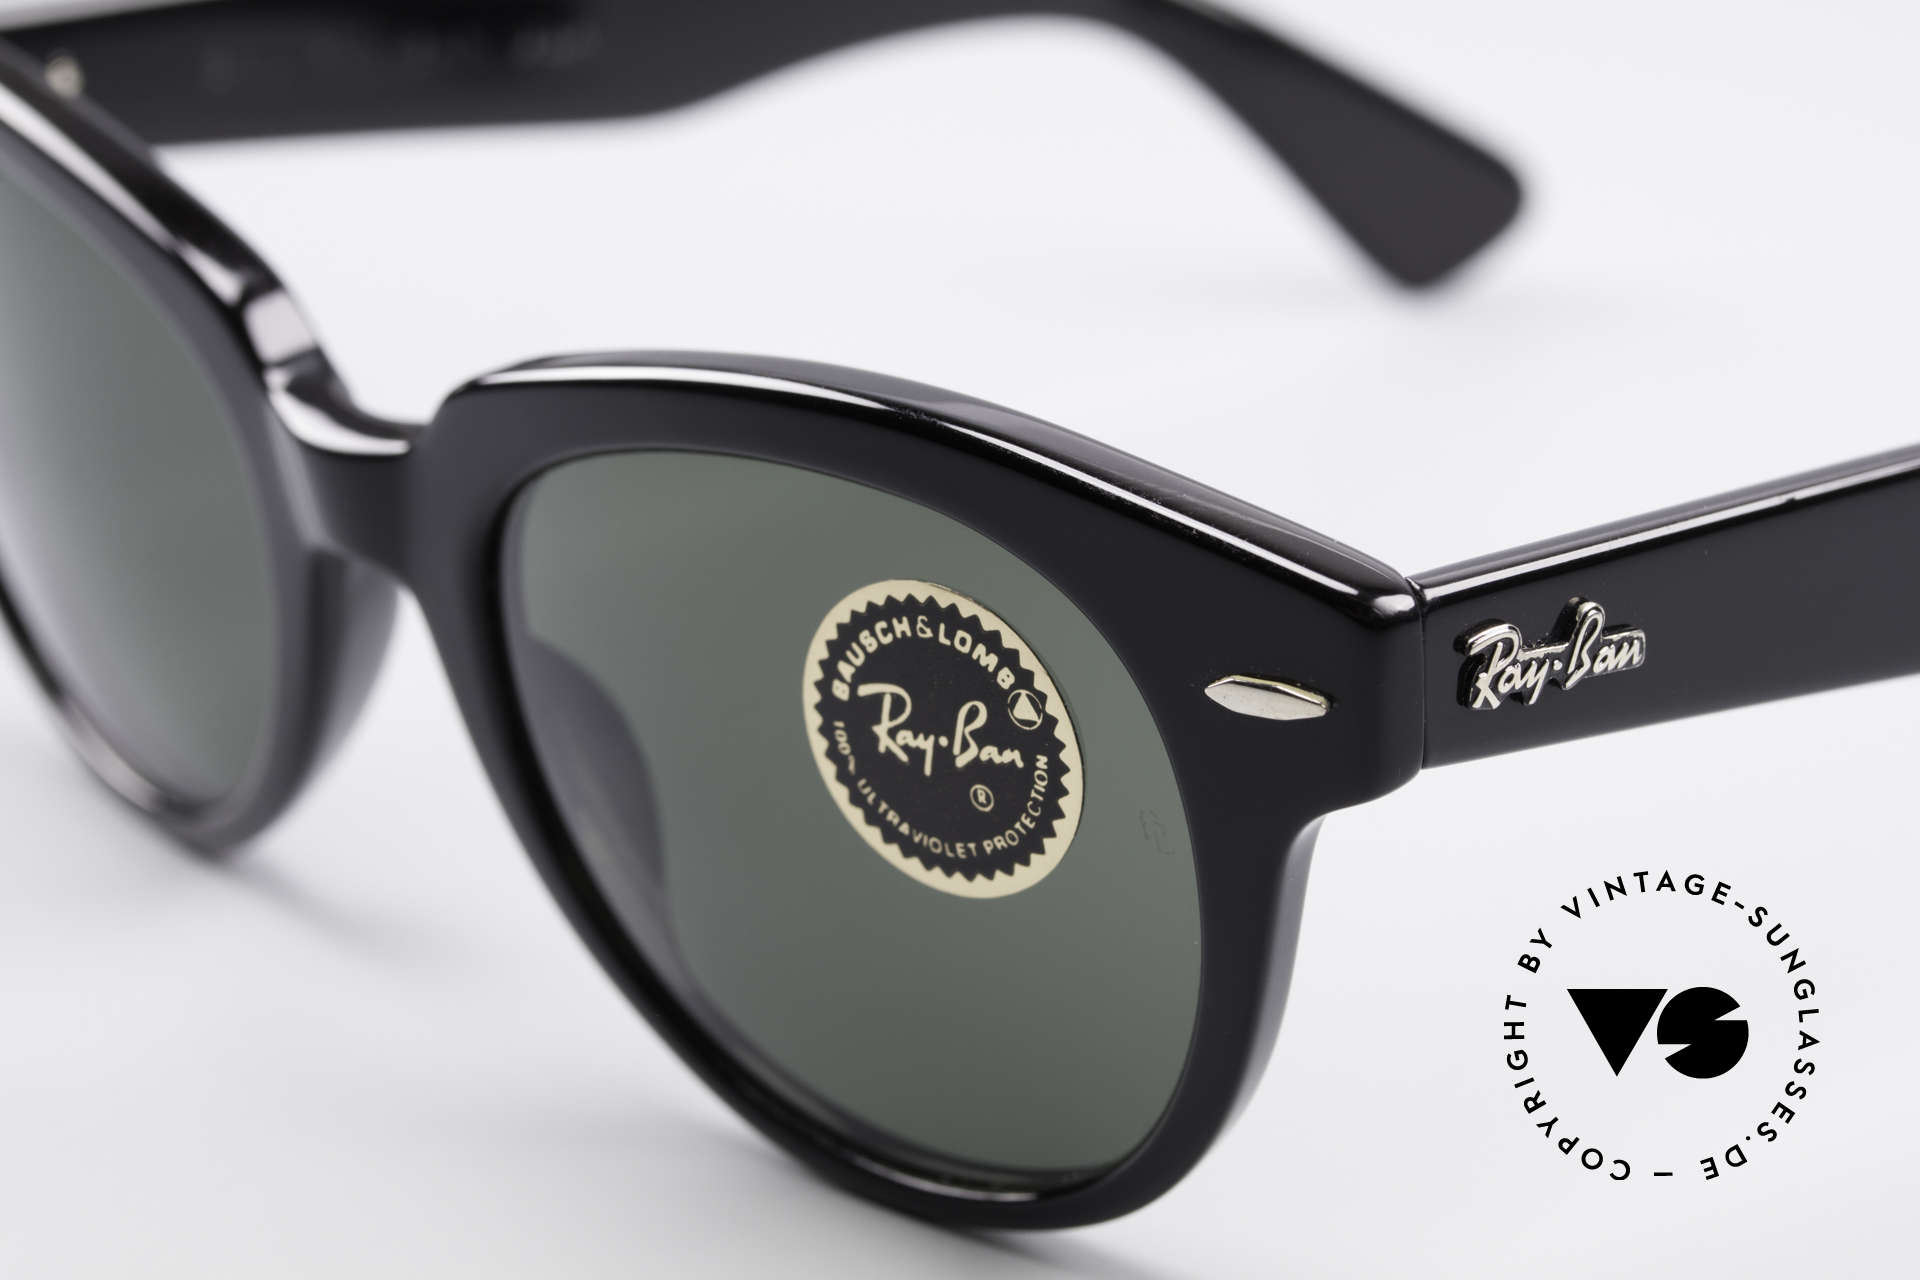 Ray Ban Orion Old Bausch&Lomb USA Frame, unworn (like all our VINTAGE Ray Ban shades), Made for Men and Women